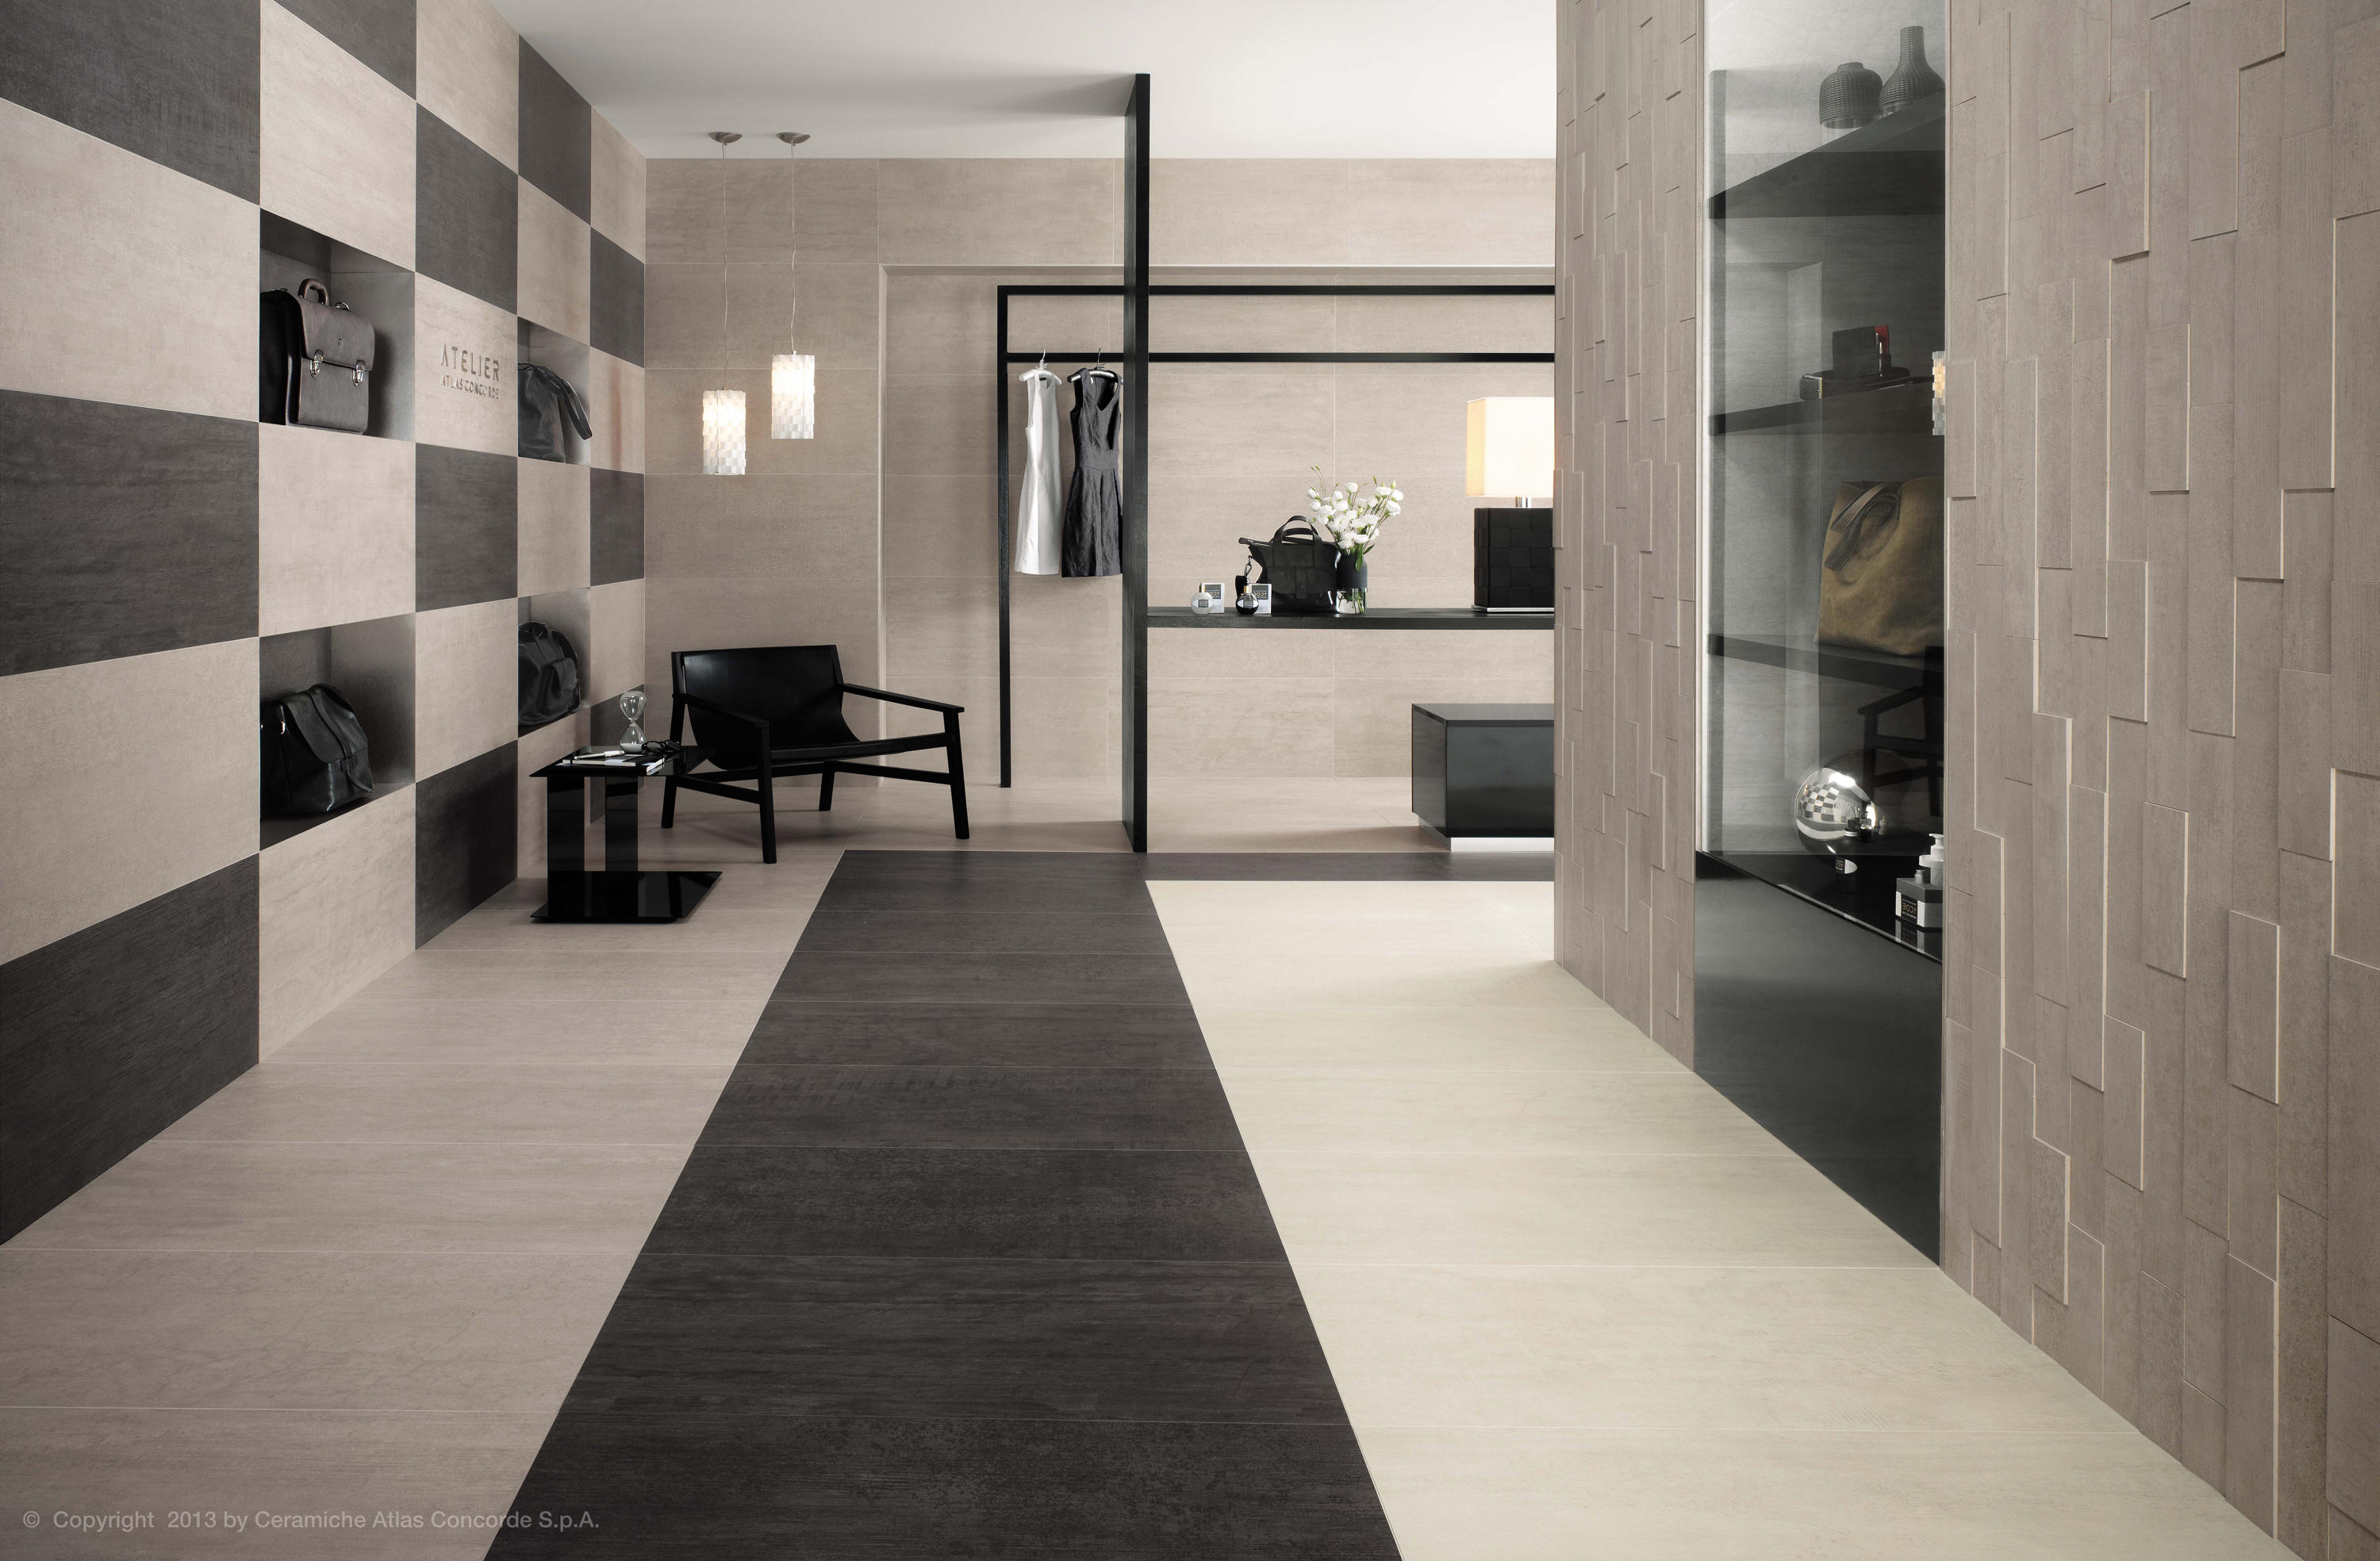 mark chrome tiles from atlas concorde architonic. Black Bedroom Furniture Sets. Home Design Ideas